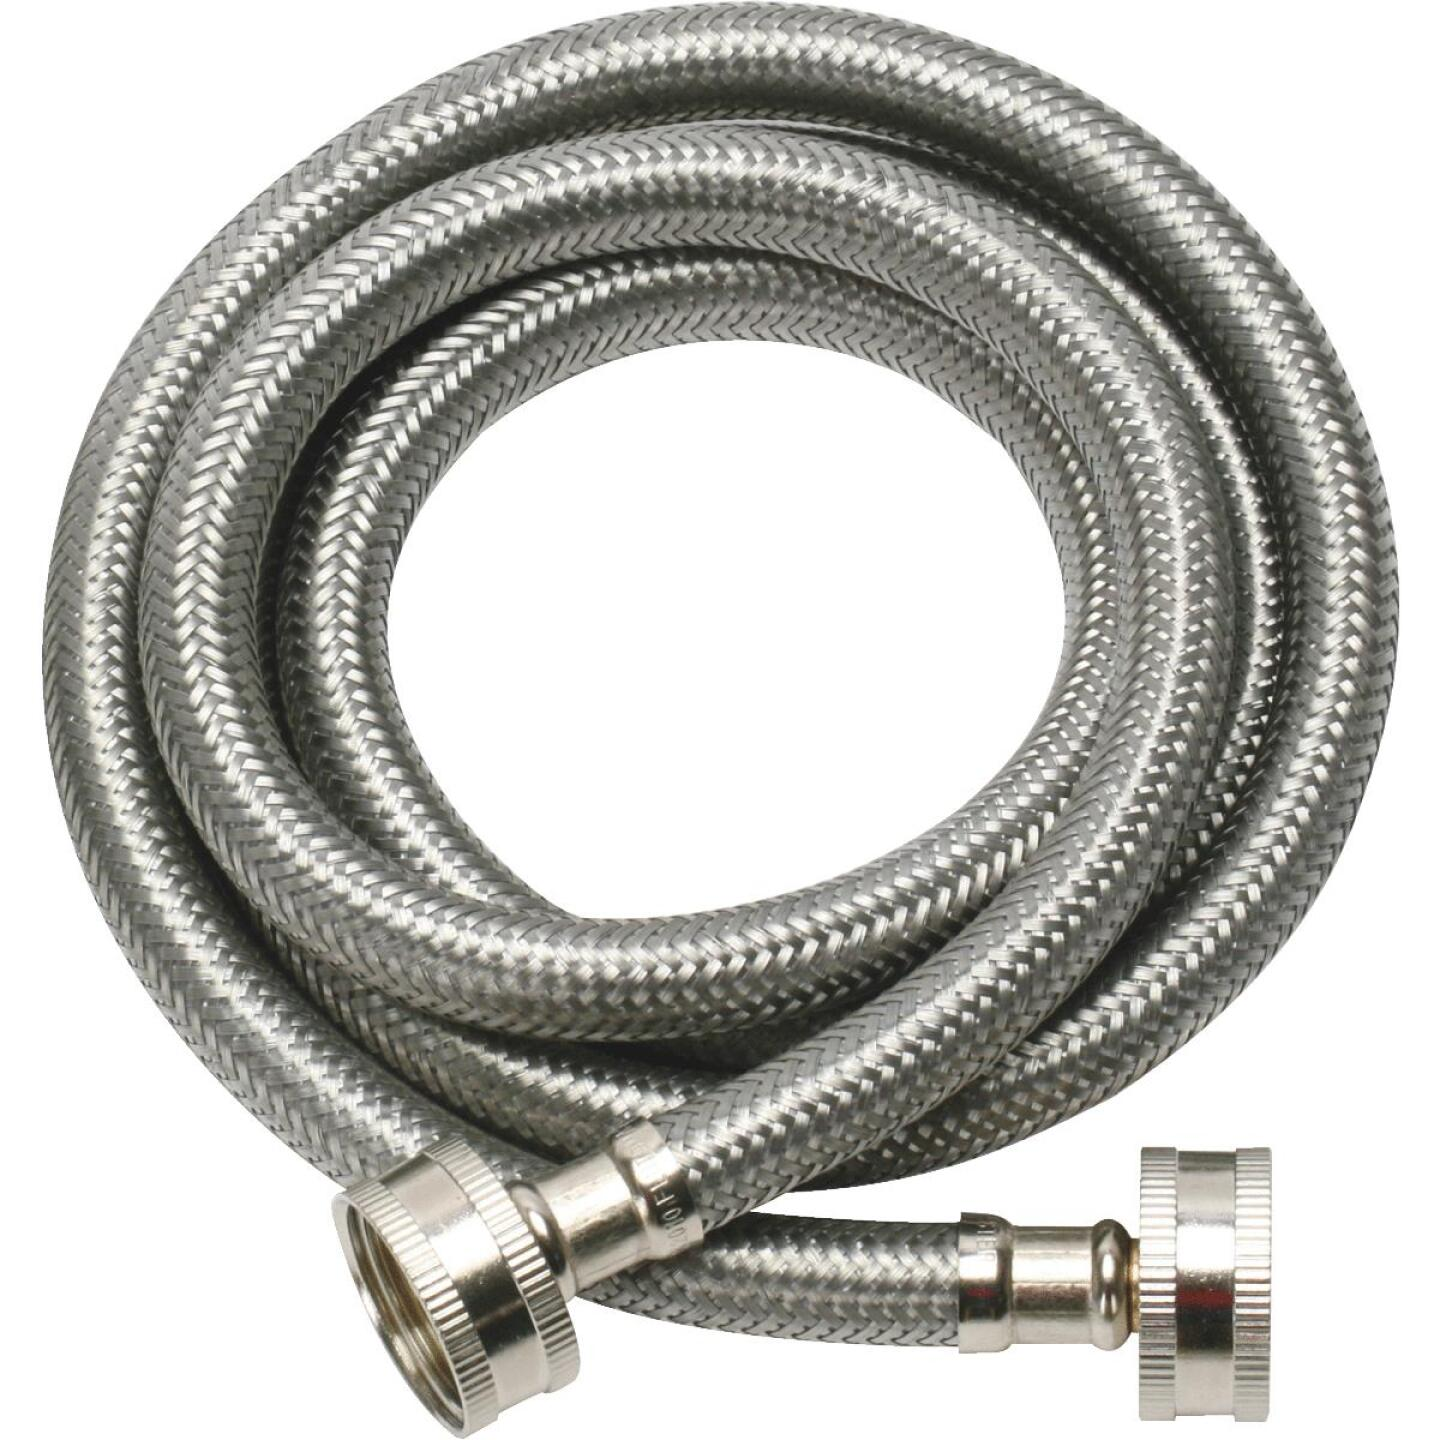 Fluidmaster 3/4 x 3/4 In. Hose Fitting x 60 In. L Braided Stainless Steel Washing Machine Hose (2-Pack) Image 2